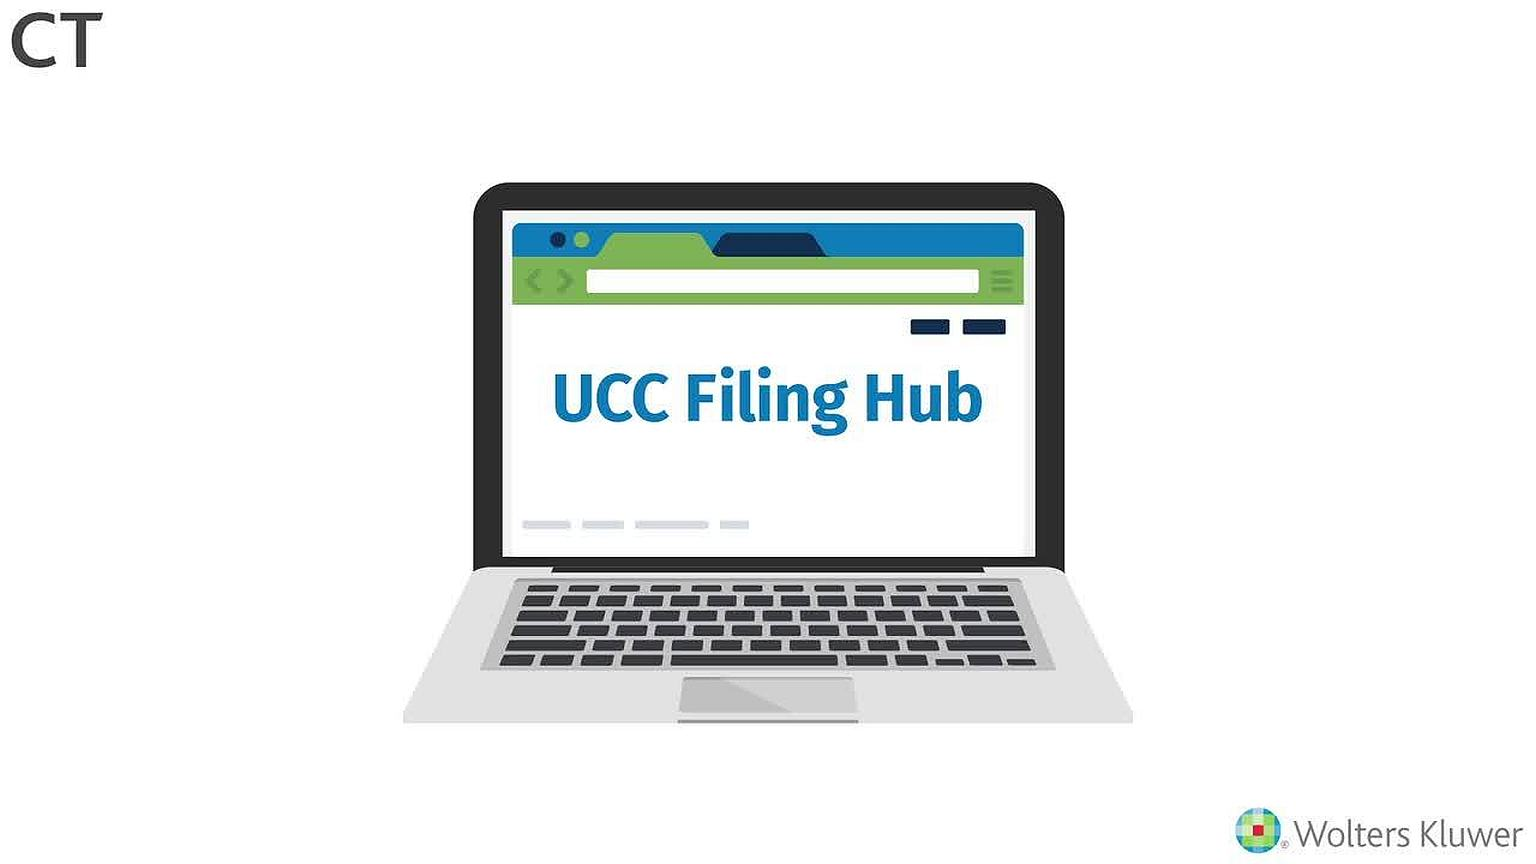 UCC filing hub will streamline your process